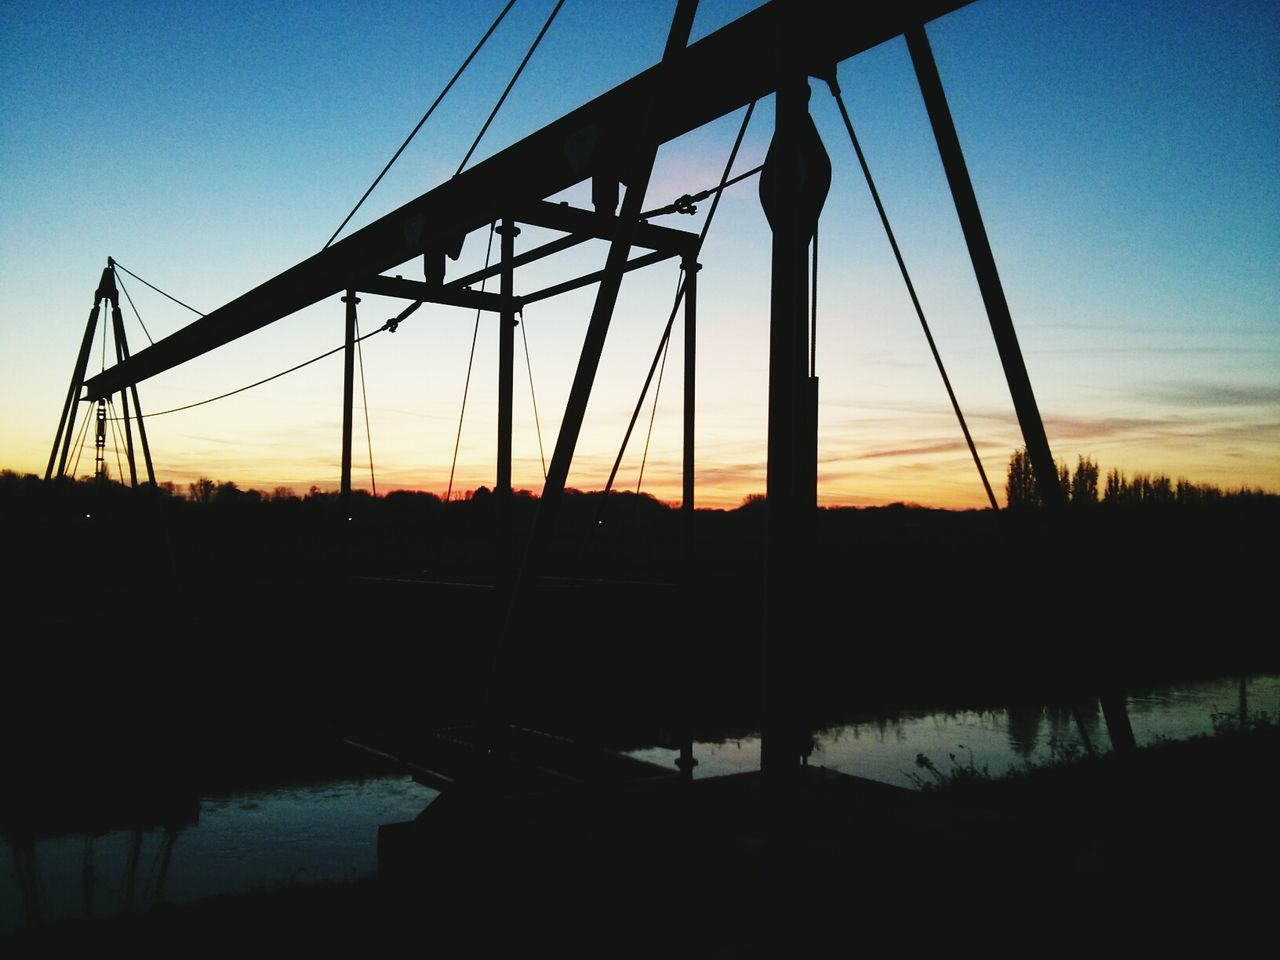 silhouette, sunset, water, reflection, sky, connection, bridge - man made structure, outdoors, no people, river, tranquility, tranquil scene, travel destinations, nature, scenics, landscape, tree, architecture, clear sky, beauty in nature, day